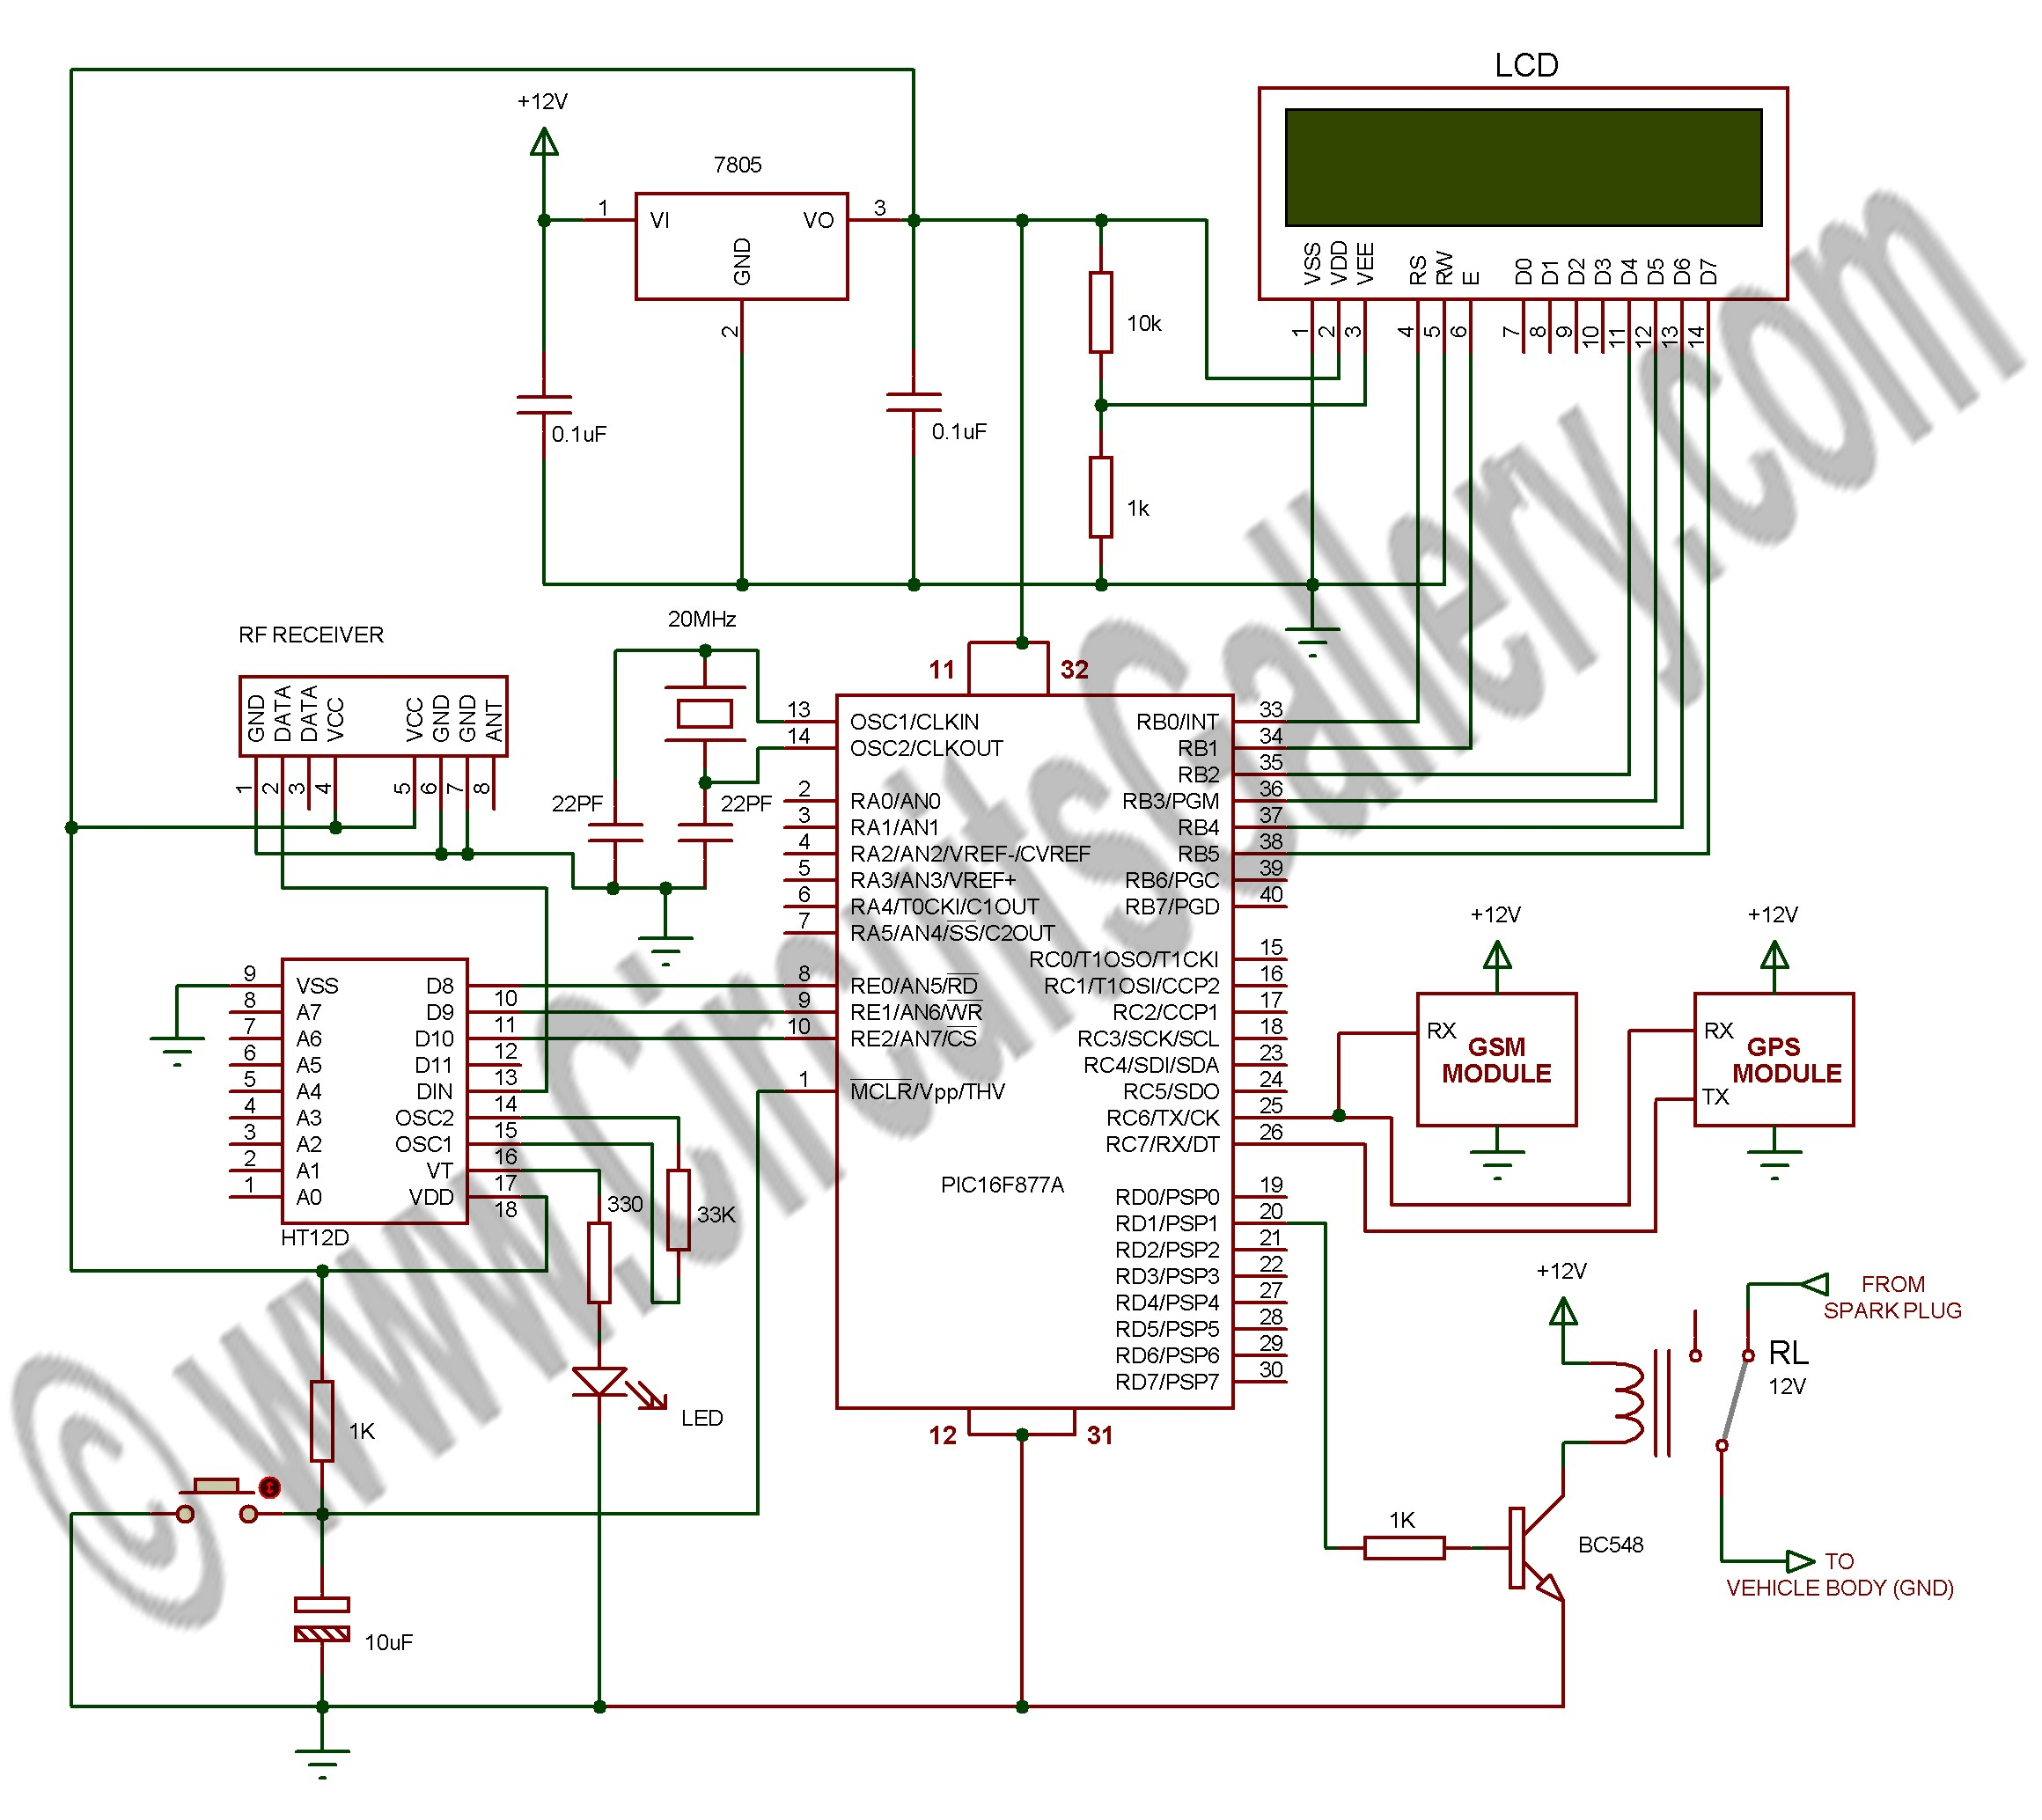 Digital Speedometer Circuit Diagram for Motorcycle Digital Speedometer Circuit Diagram for Motorcycle Project Of Digital Speedometer Circuit Diagram for Motorcycle